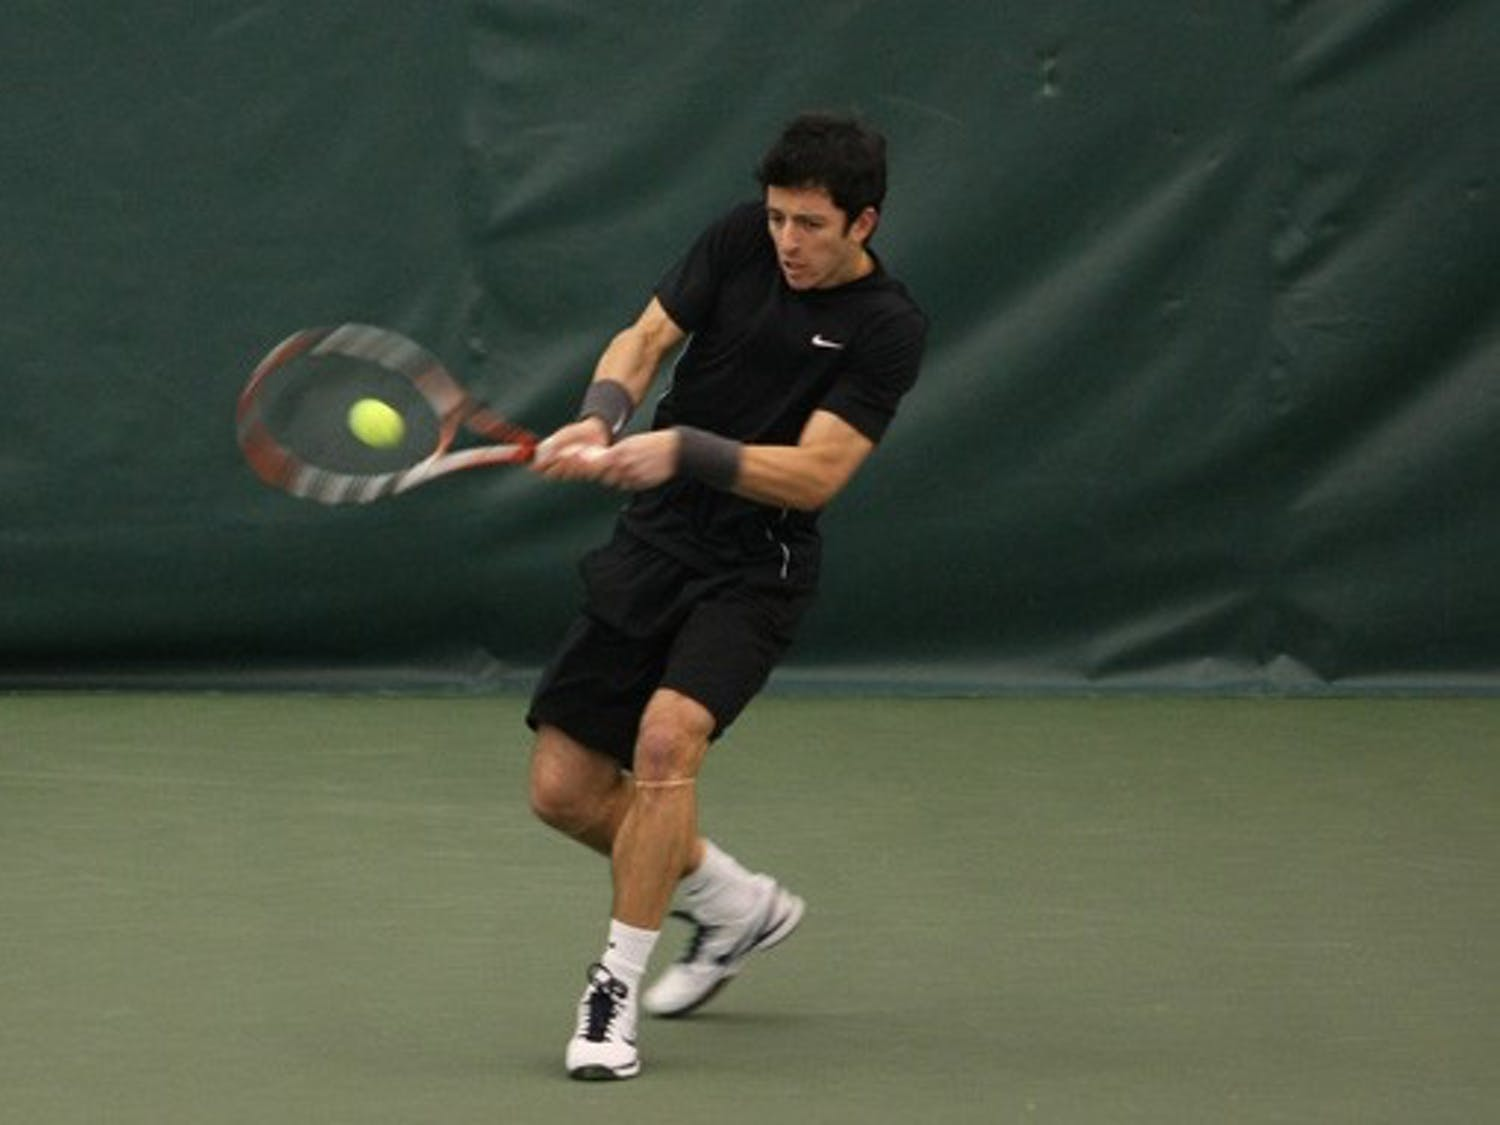 Henrique Cunha suffered his first loss in over a year Saturday, falling to No. 1-ranked Rhyne Williams.